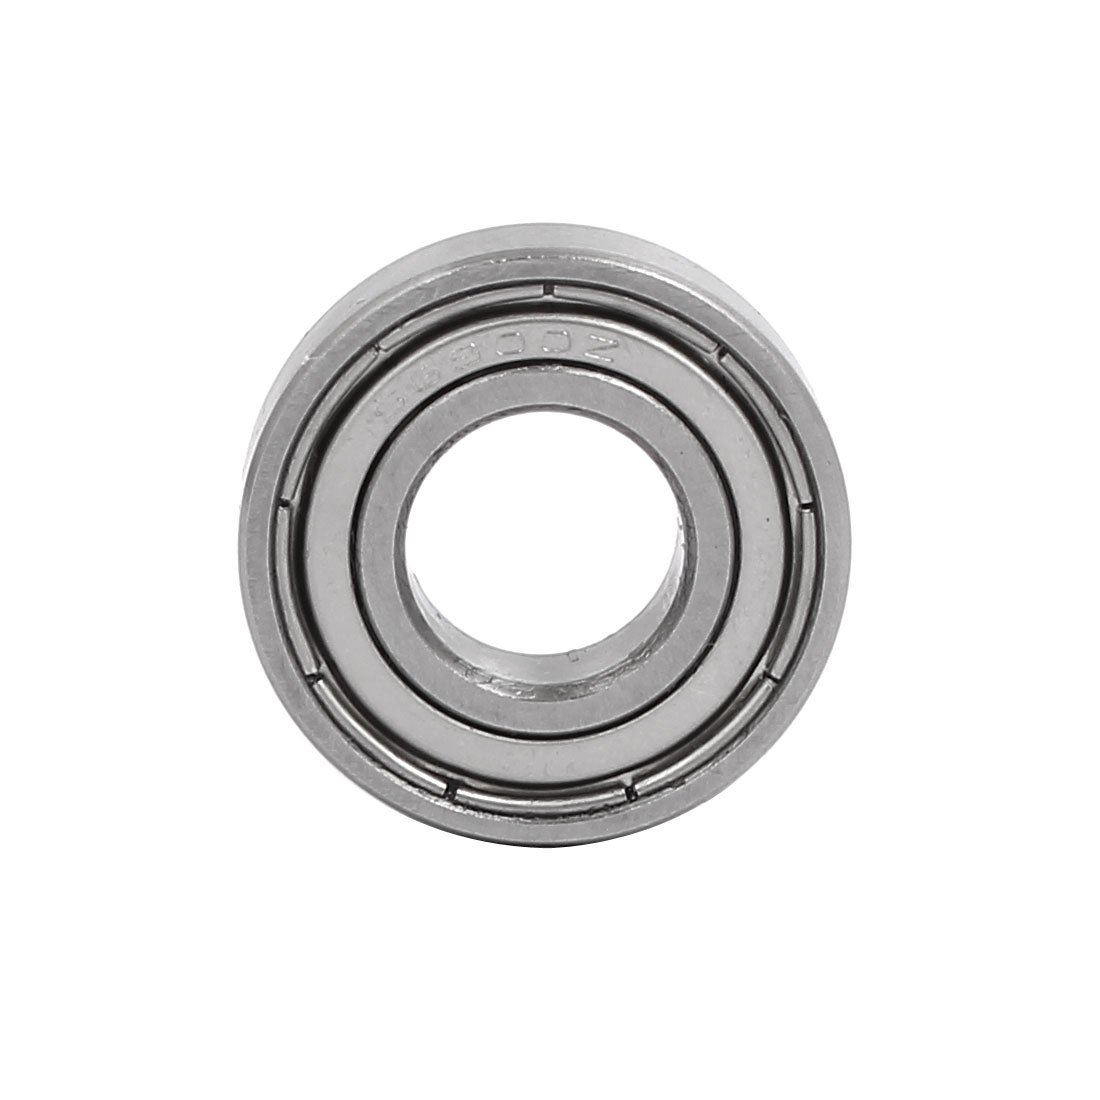 uxcell 22mmx10mmx6mm Stainless Steel Shielded Deep Groove Radial 6900 Ball Bearing